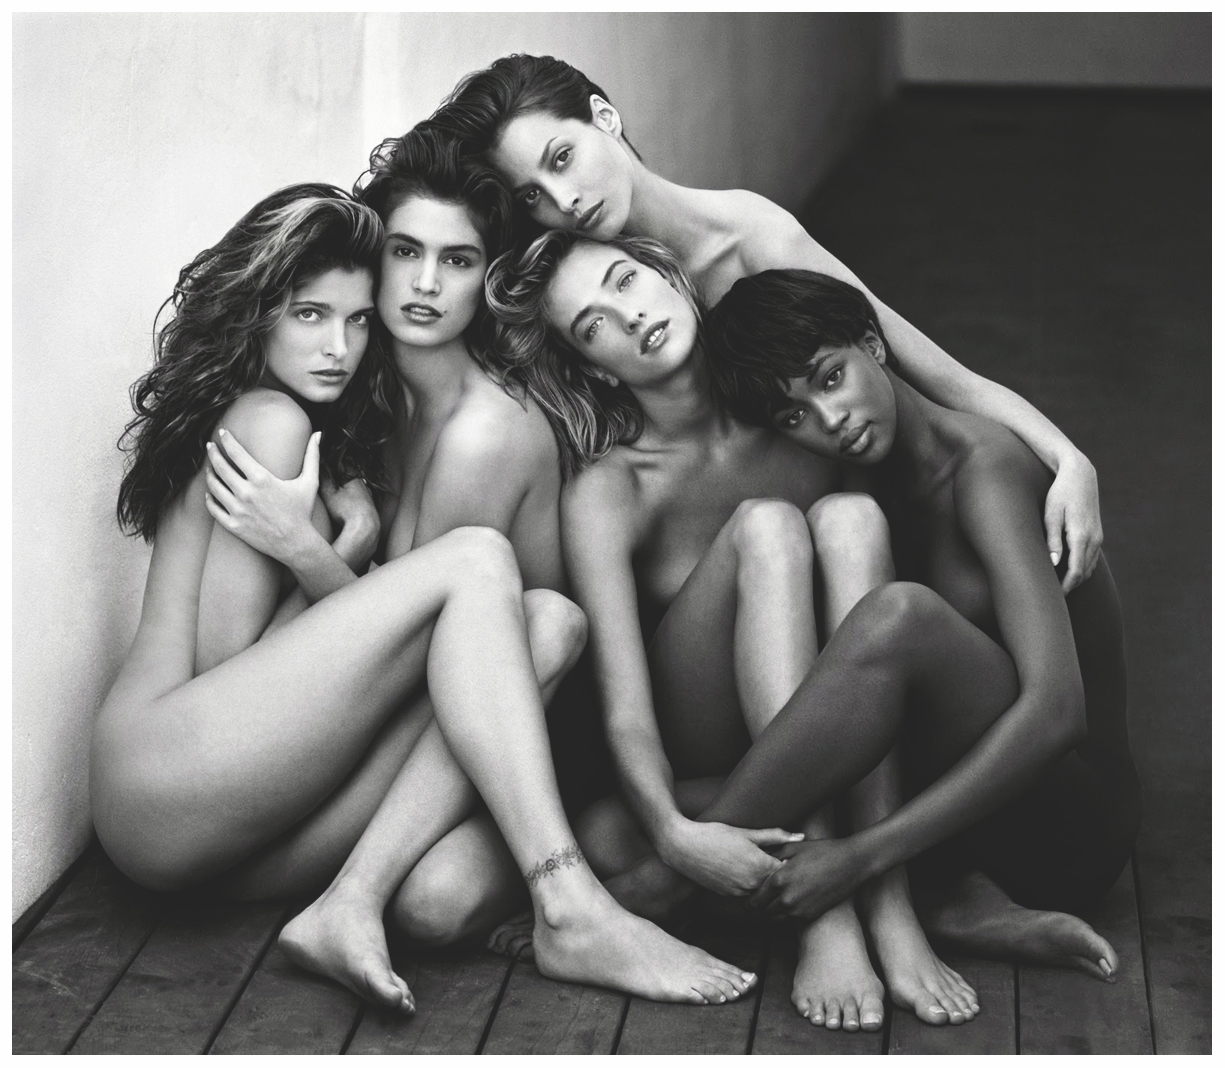 herb-ritts-stephanie-cindy-christy-tatjana-naomihollywood-1989-copy.jpg